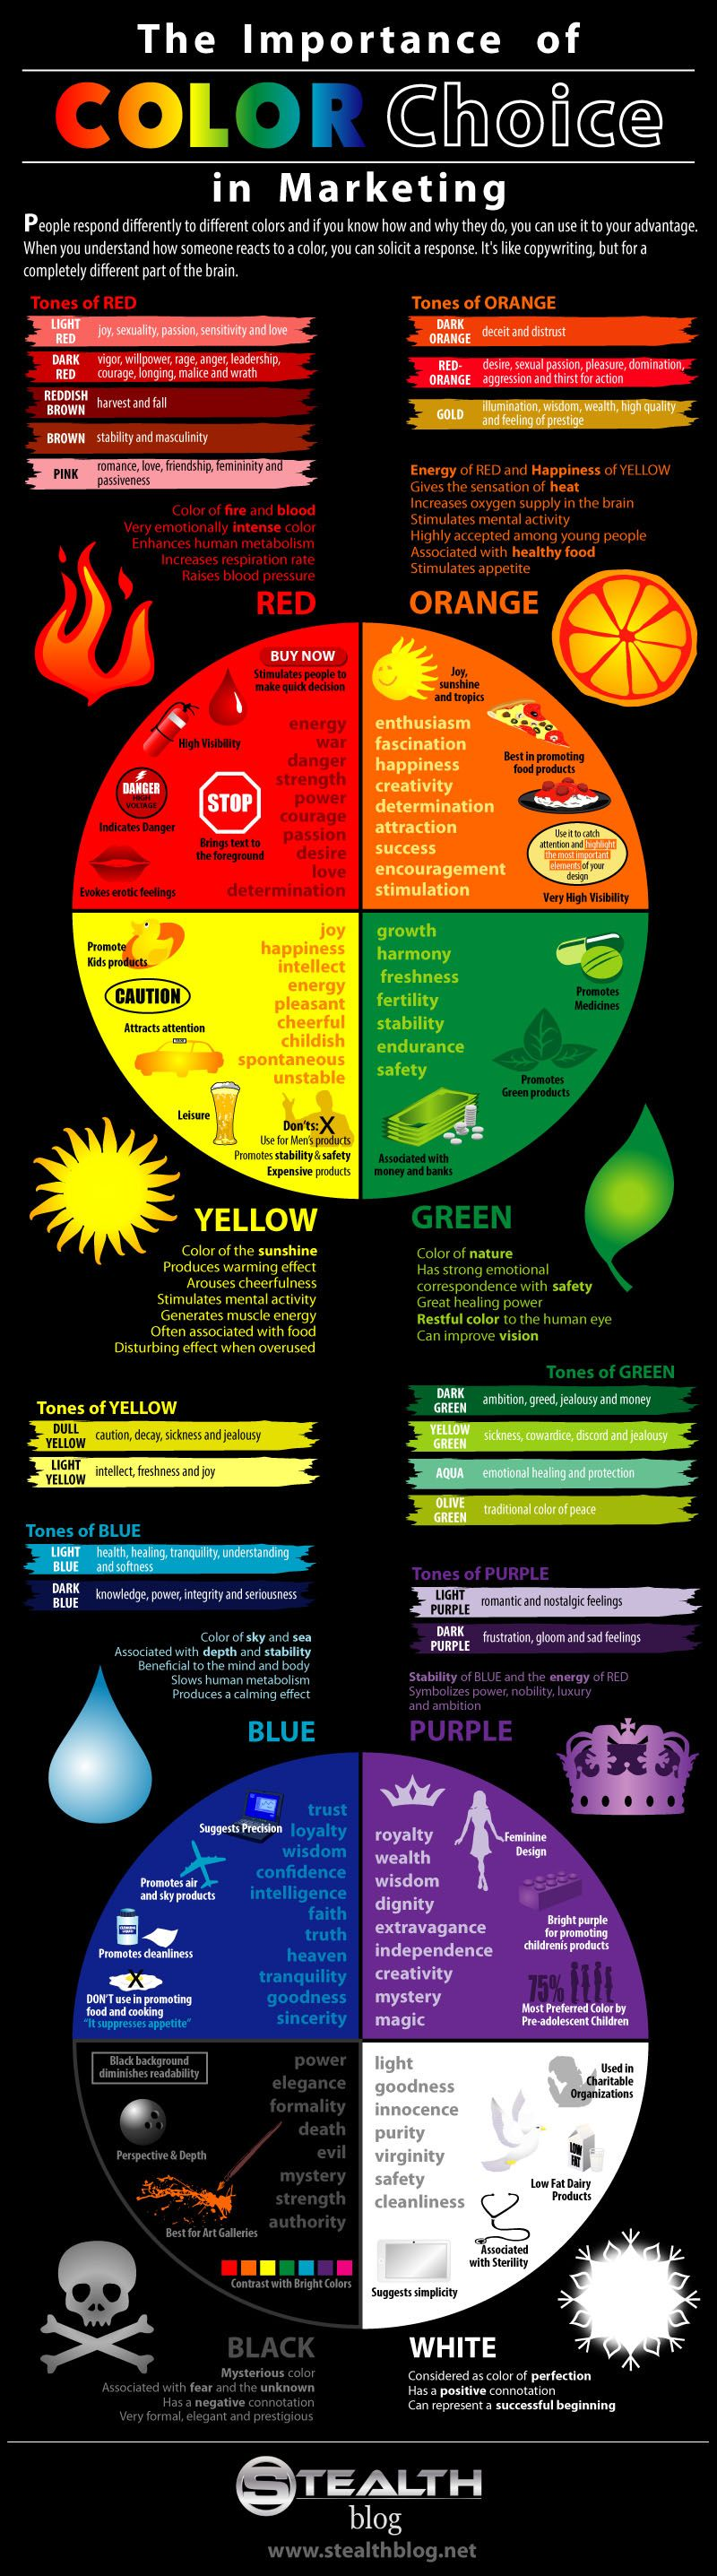 Infographic - The Importance of Color Choice in Marketing